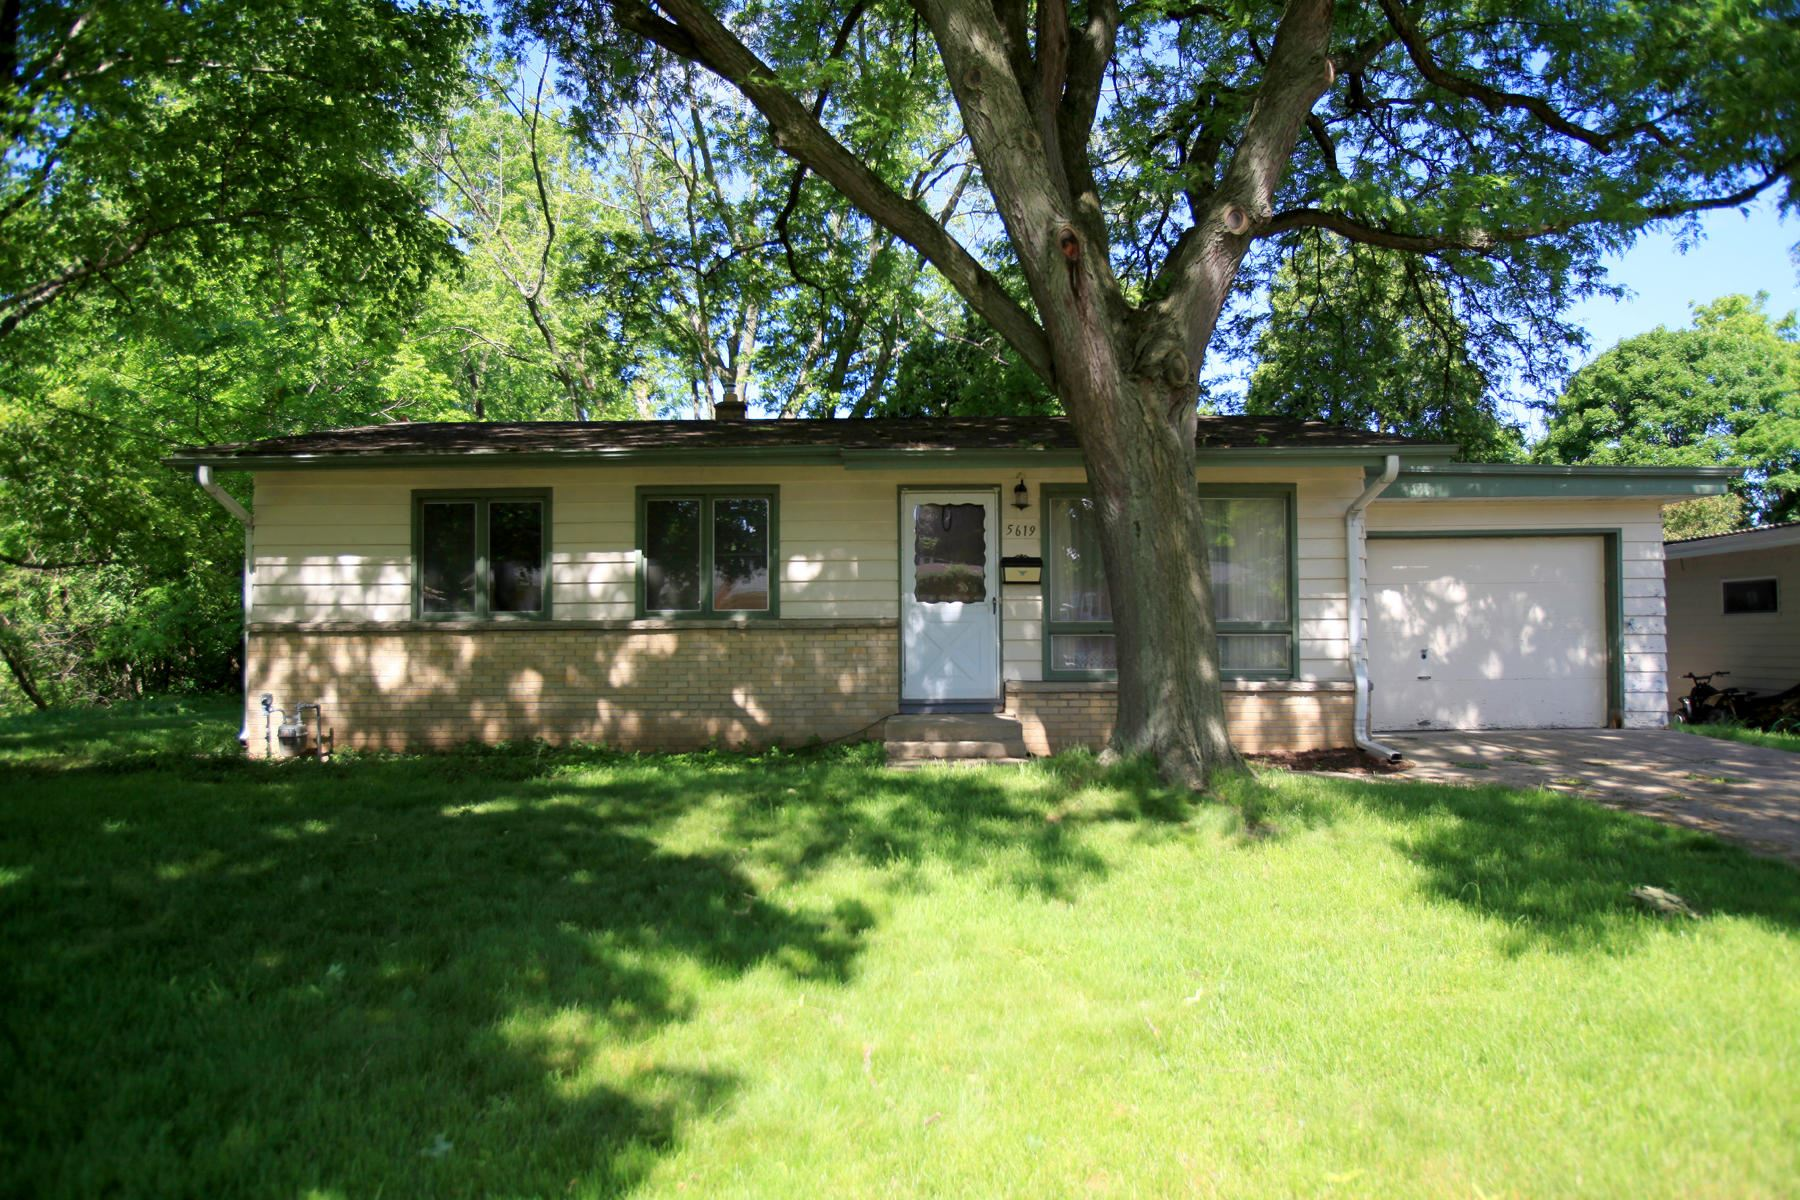 5619 Exeter St, Greendale, WI 53129 - #: 1693877